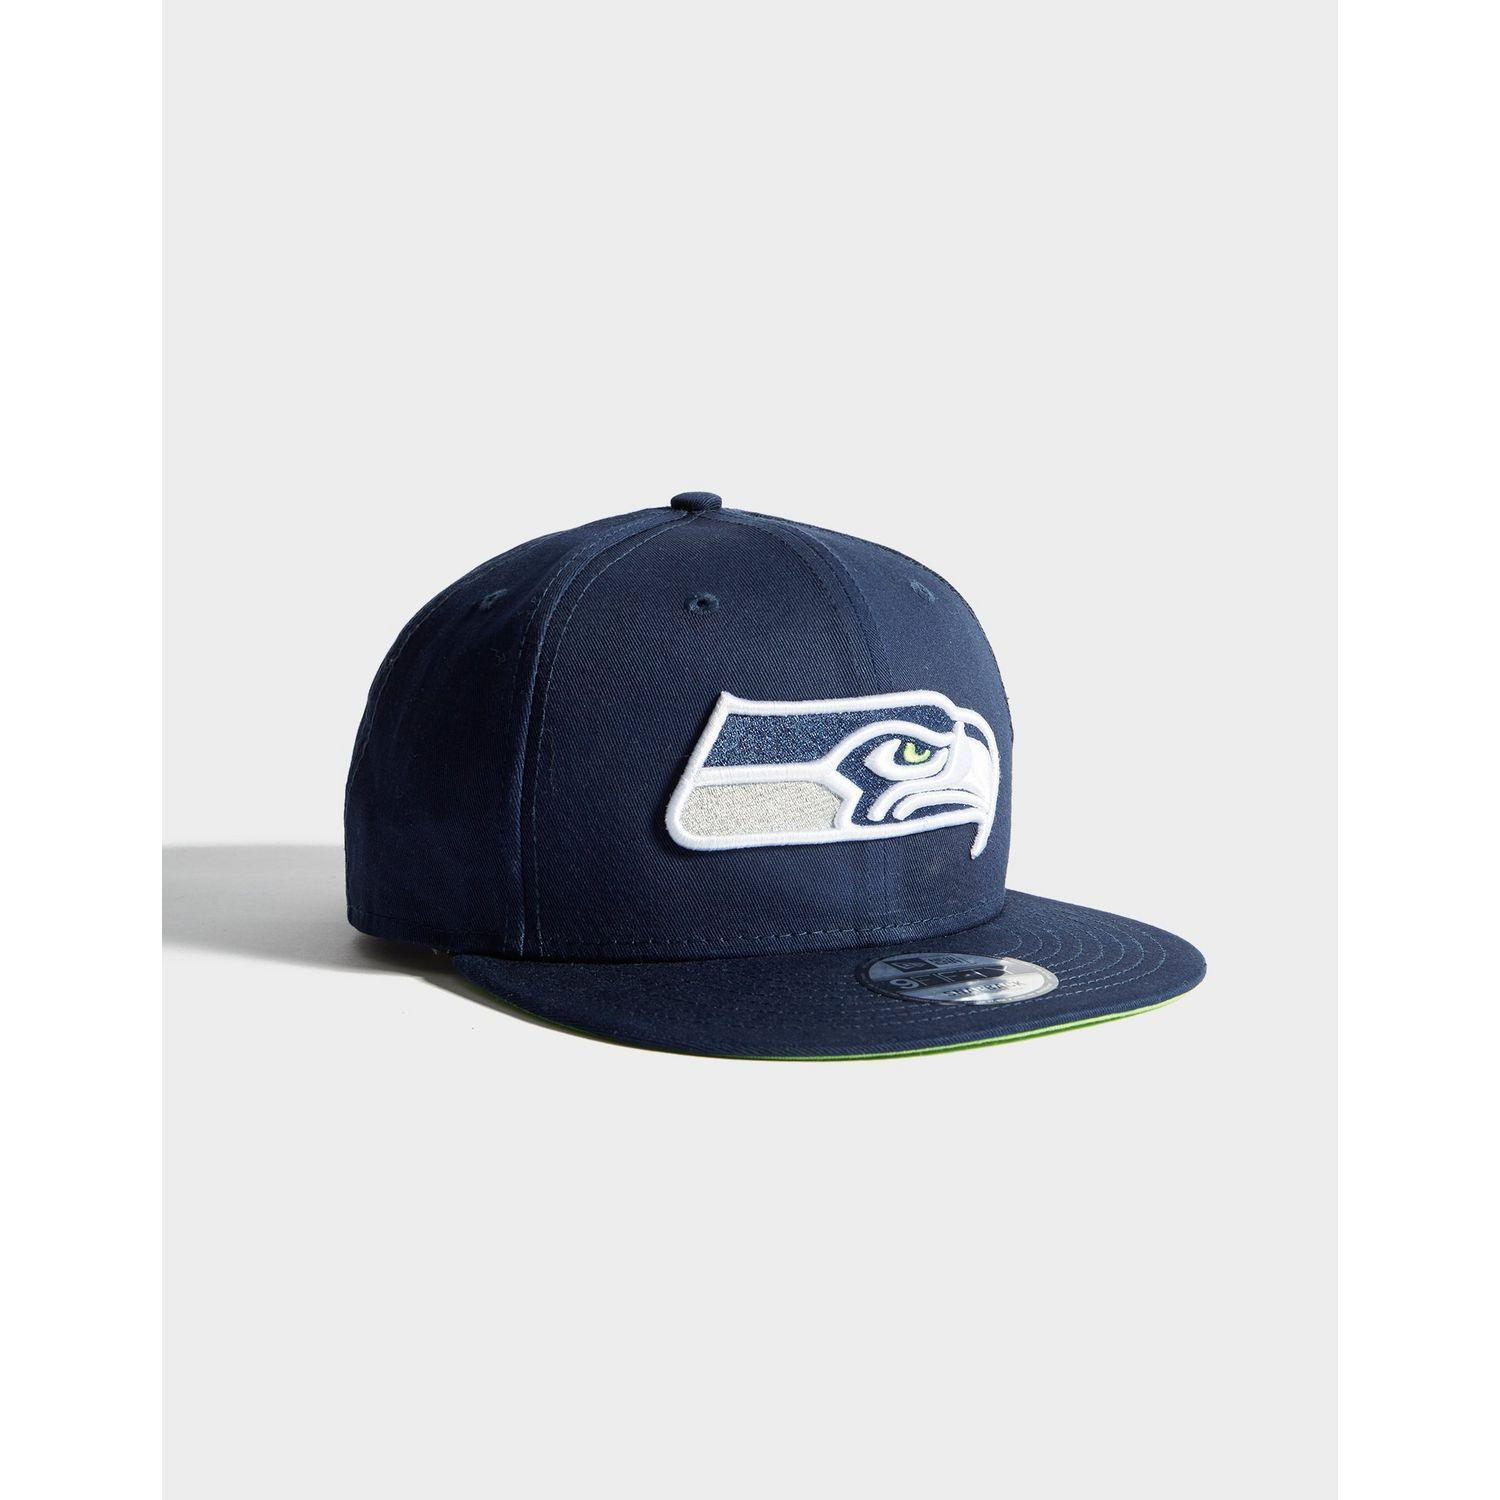 e202a9b6a0c9f0 ... Nfl Seattle Seahawks 9fifty Cap - Lyst. View fullscreen